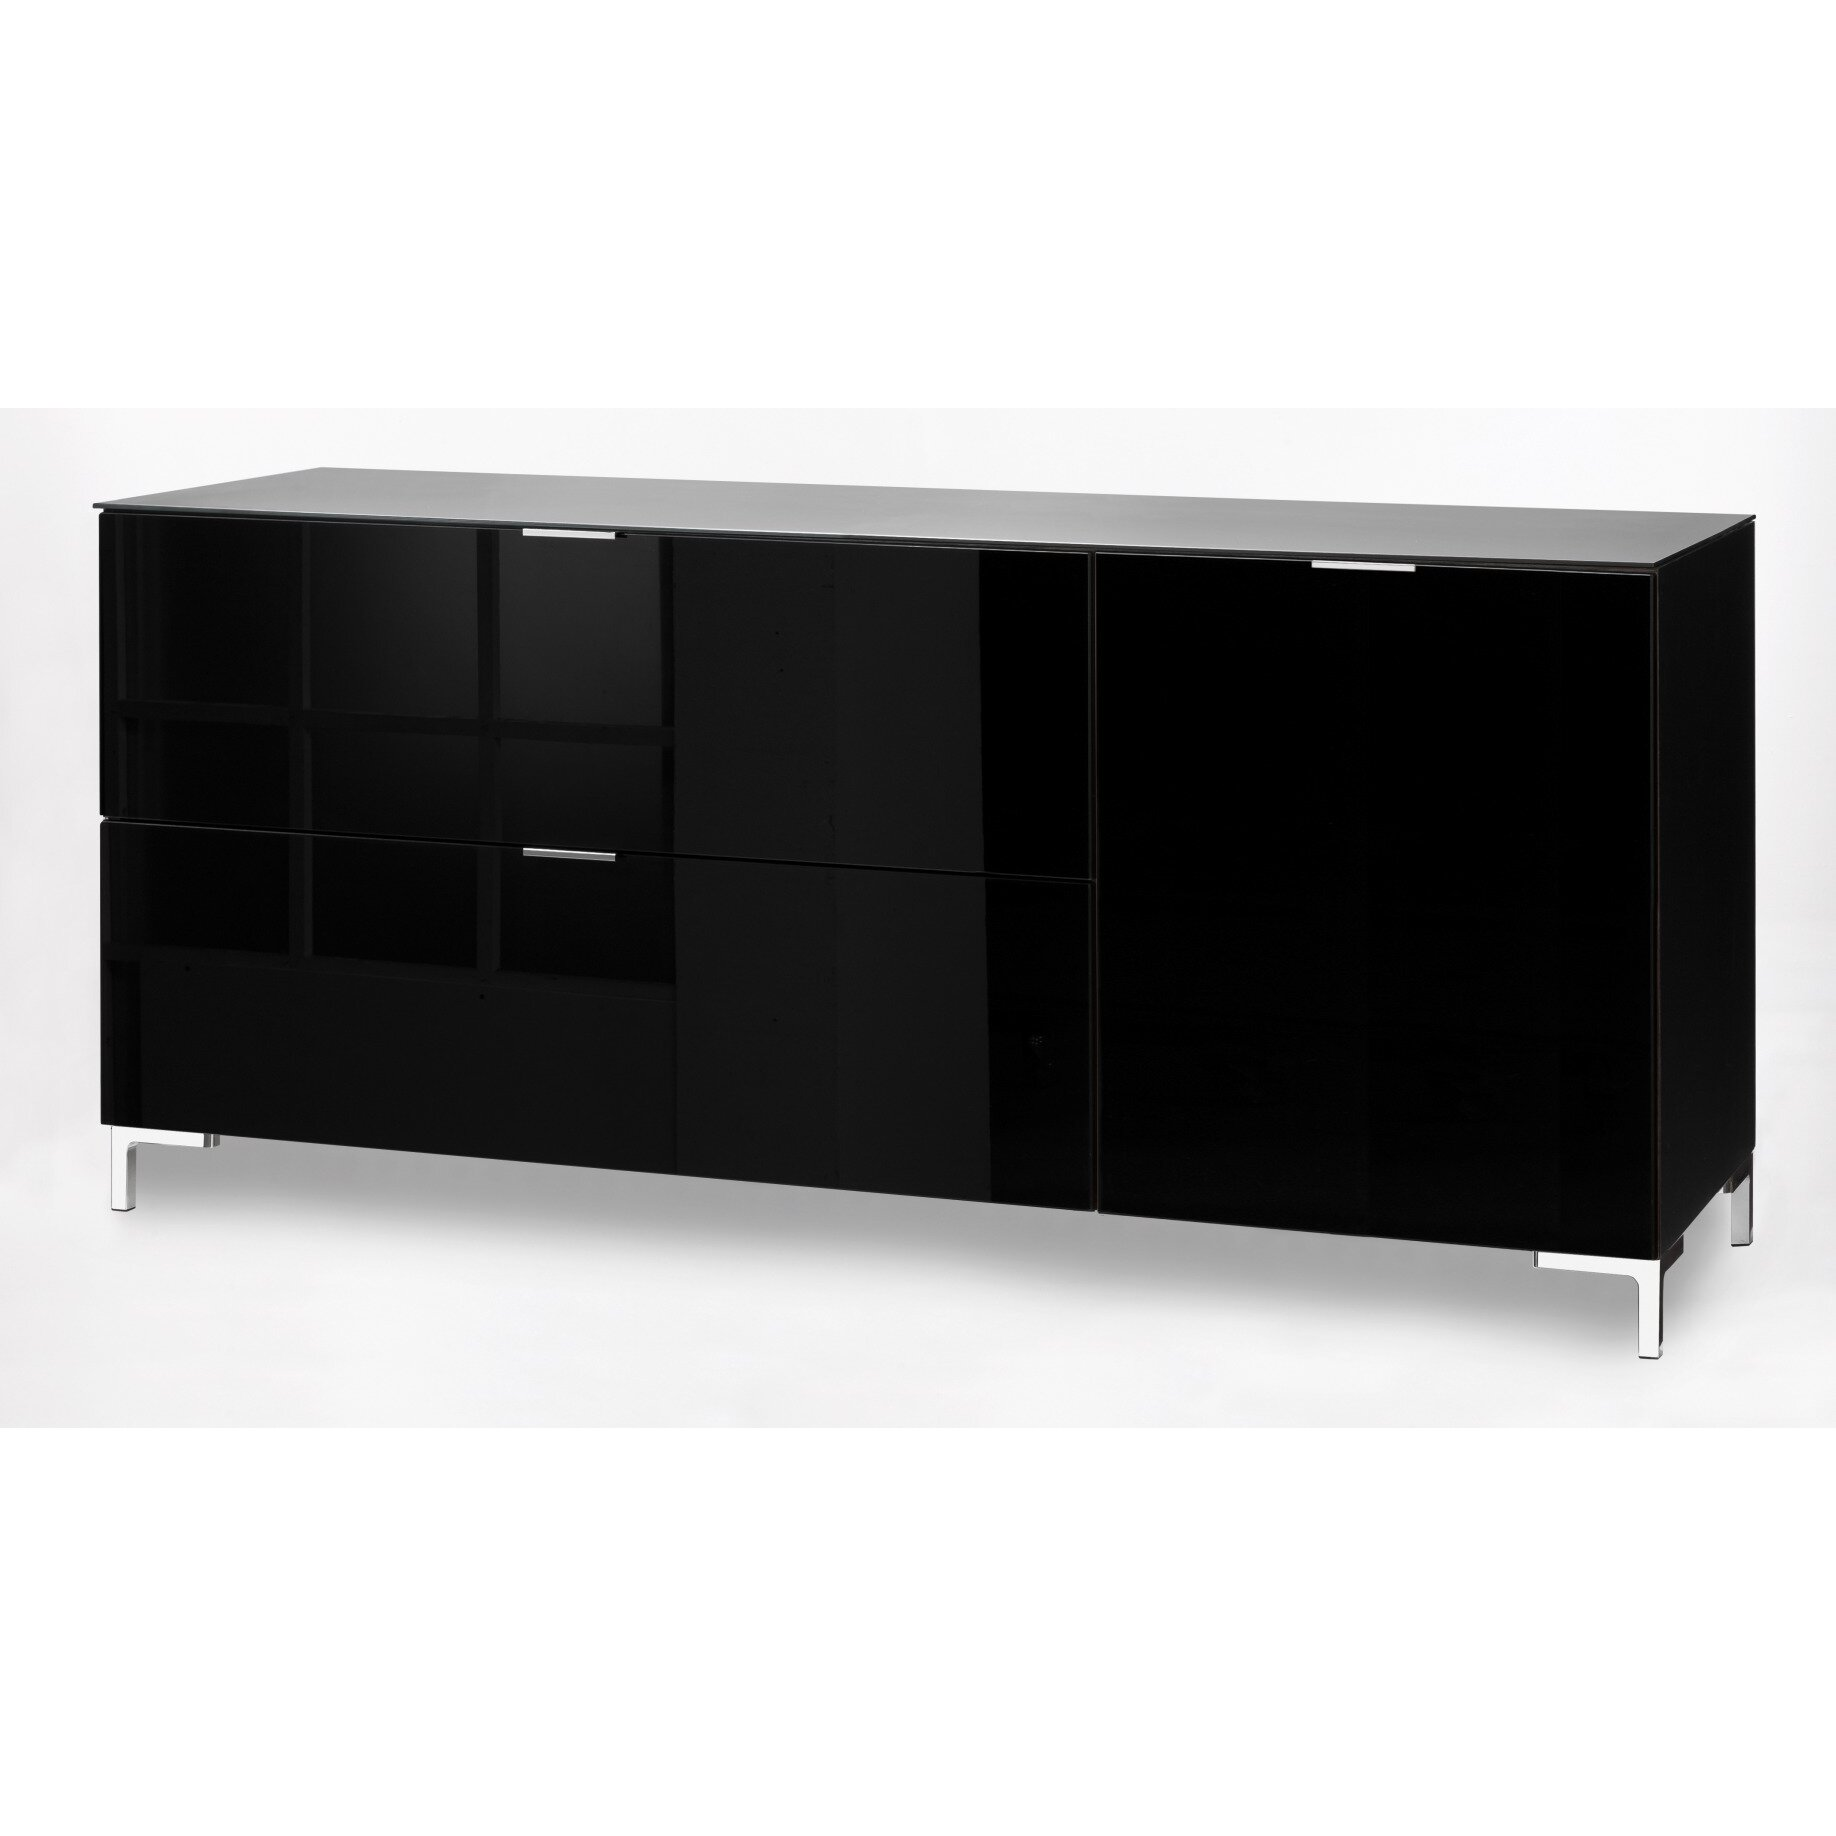 kommode 50 cm breit mit beste stil f r ihr haus ideen. Black Bedroom Furniture Sets. Home Design Ideas